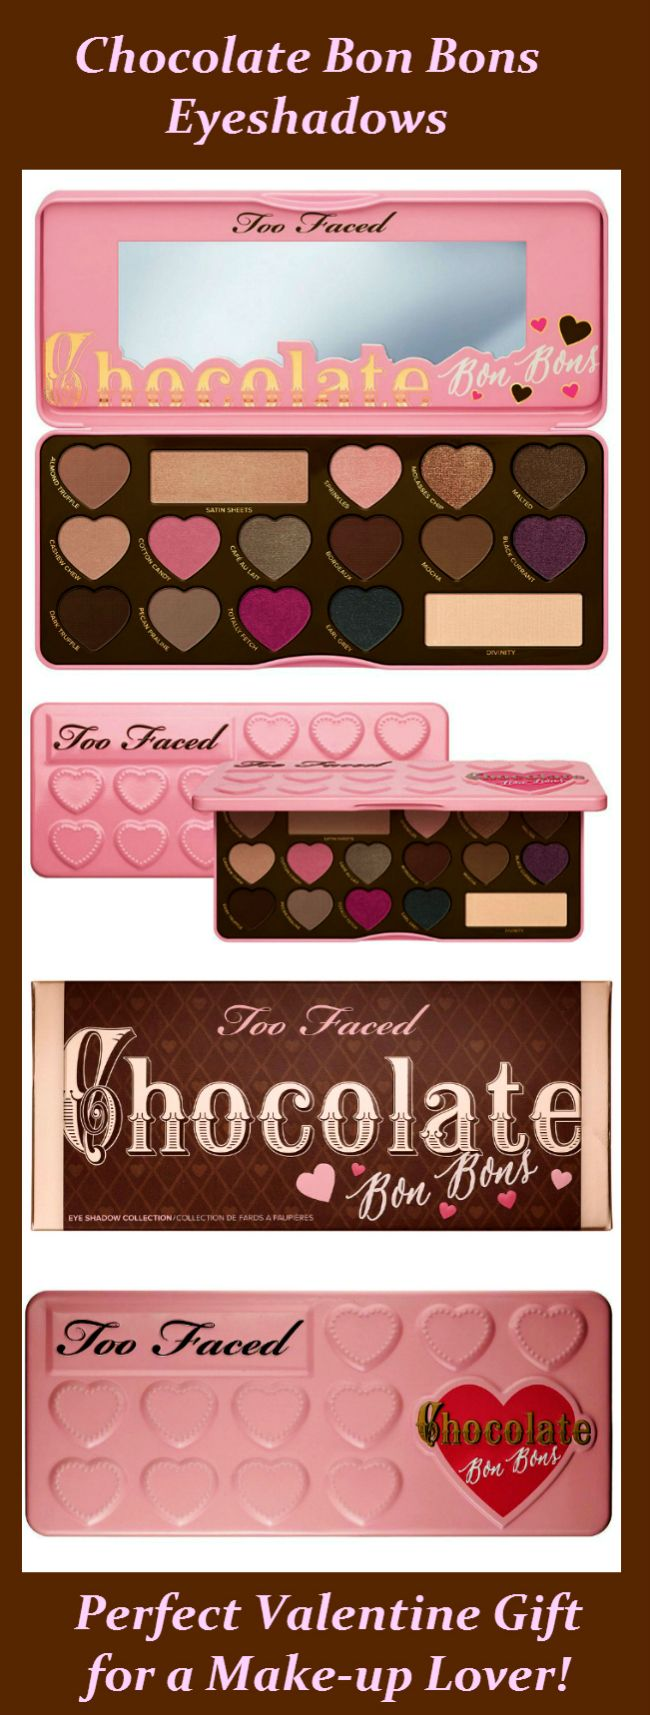 TOO FACED CHOCOLATE BON BONS EYESHADOW PALETTE INFUSED WITH CHOCOLATE-SCENTED, ANTIOXIDANT-RICH COCOA POWDER! CHOCOLATE SCENTED NATURAL MINERAL…